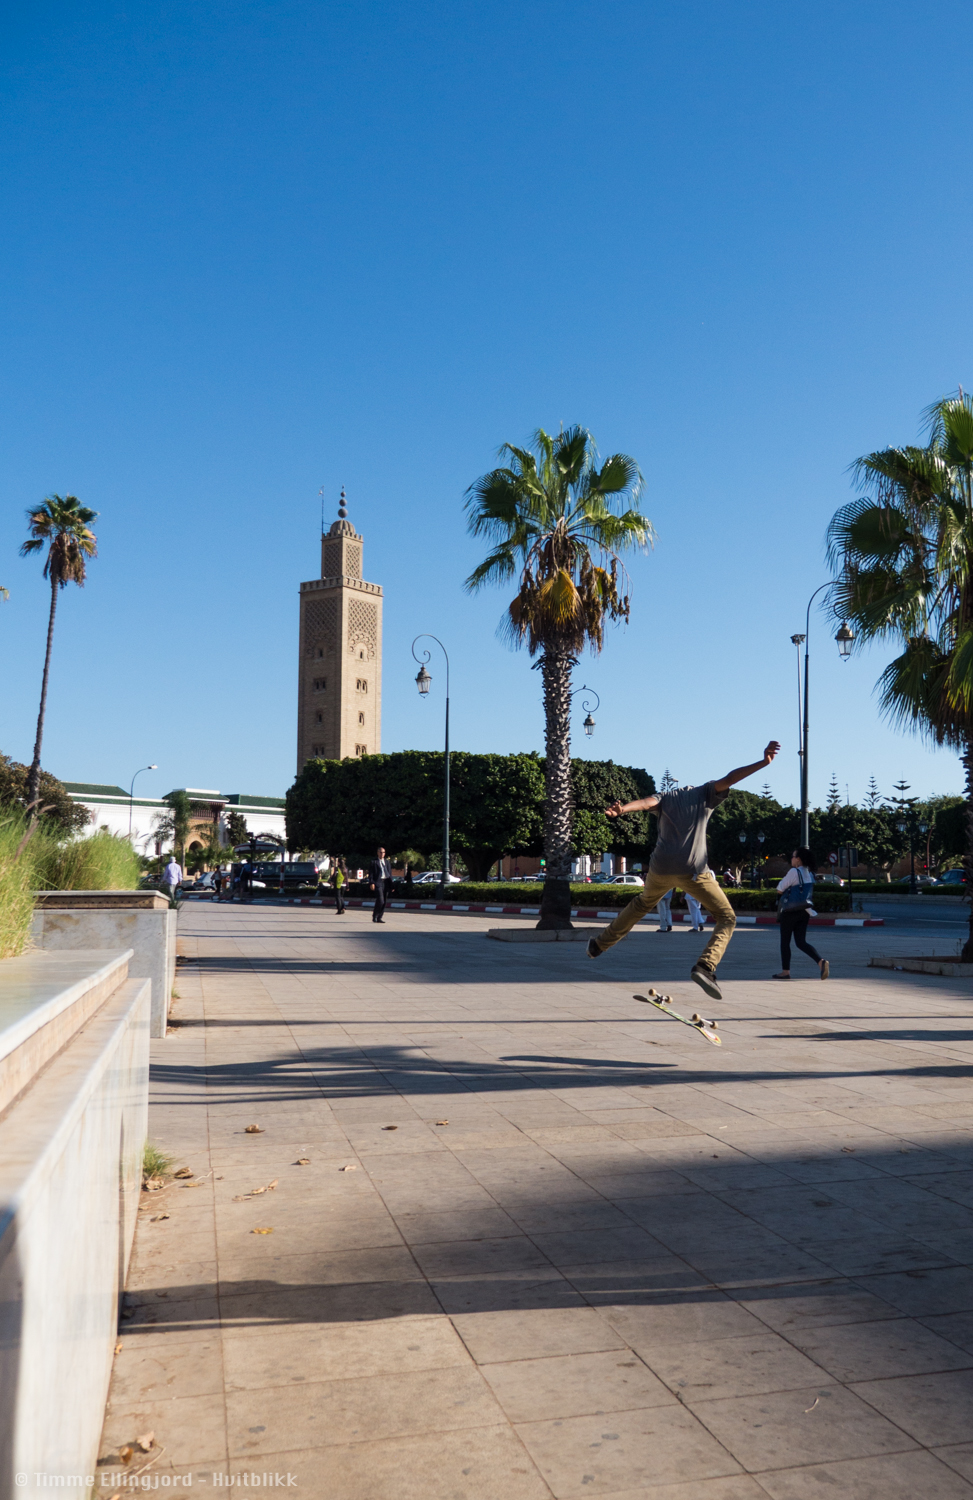 Contrasts from the urban modernity and the old school Medina could be huge in Rabat